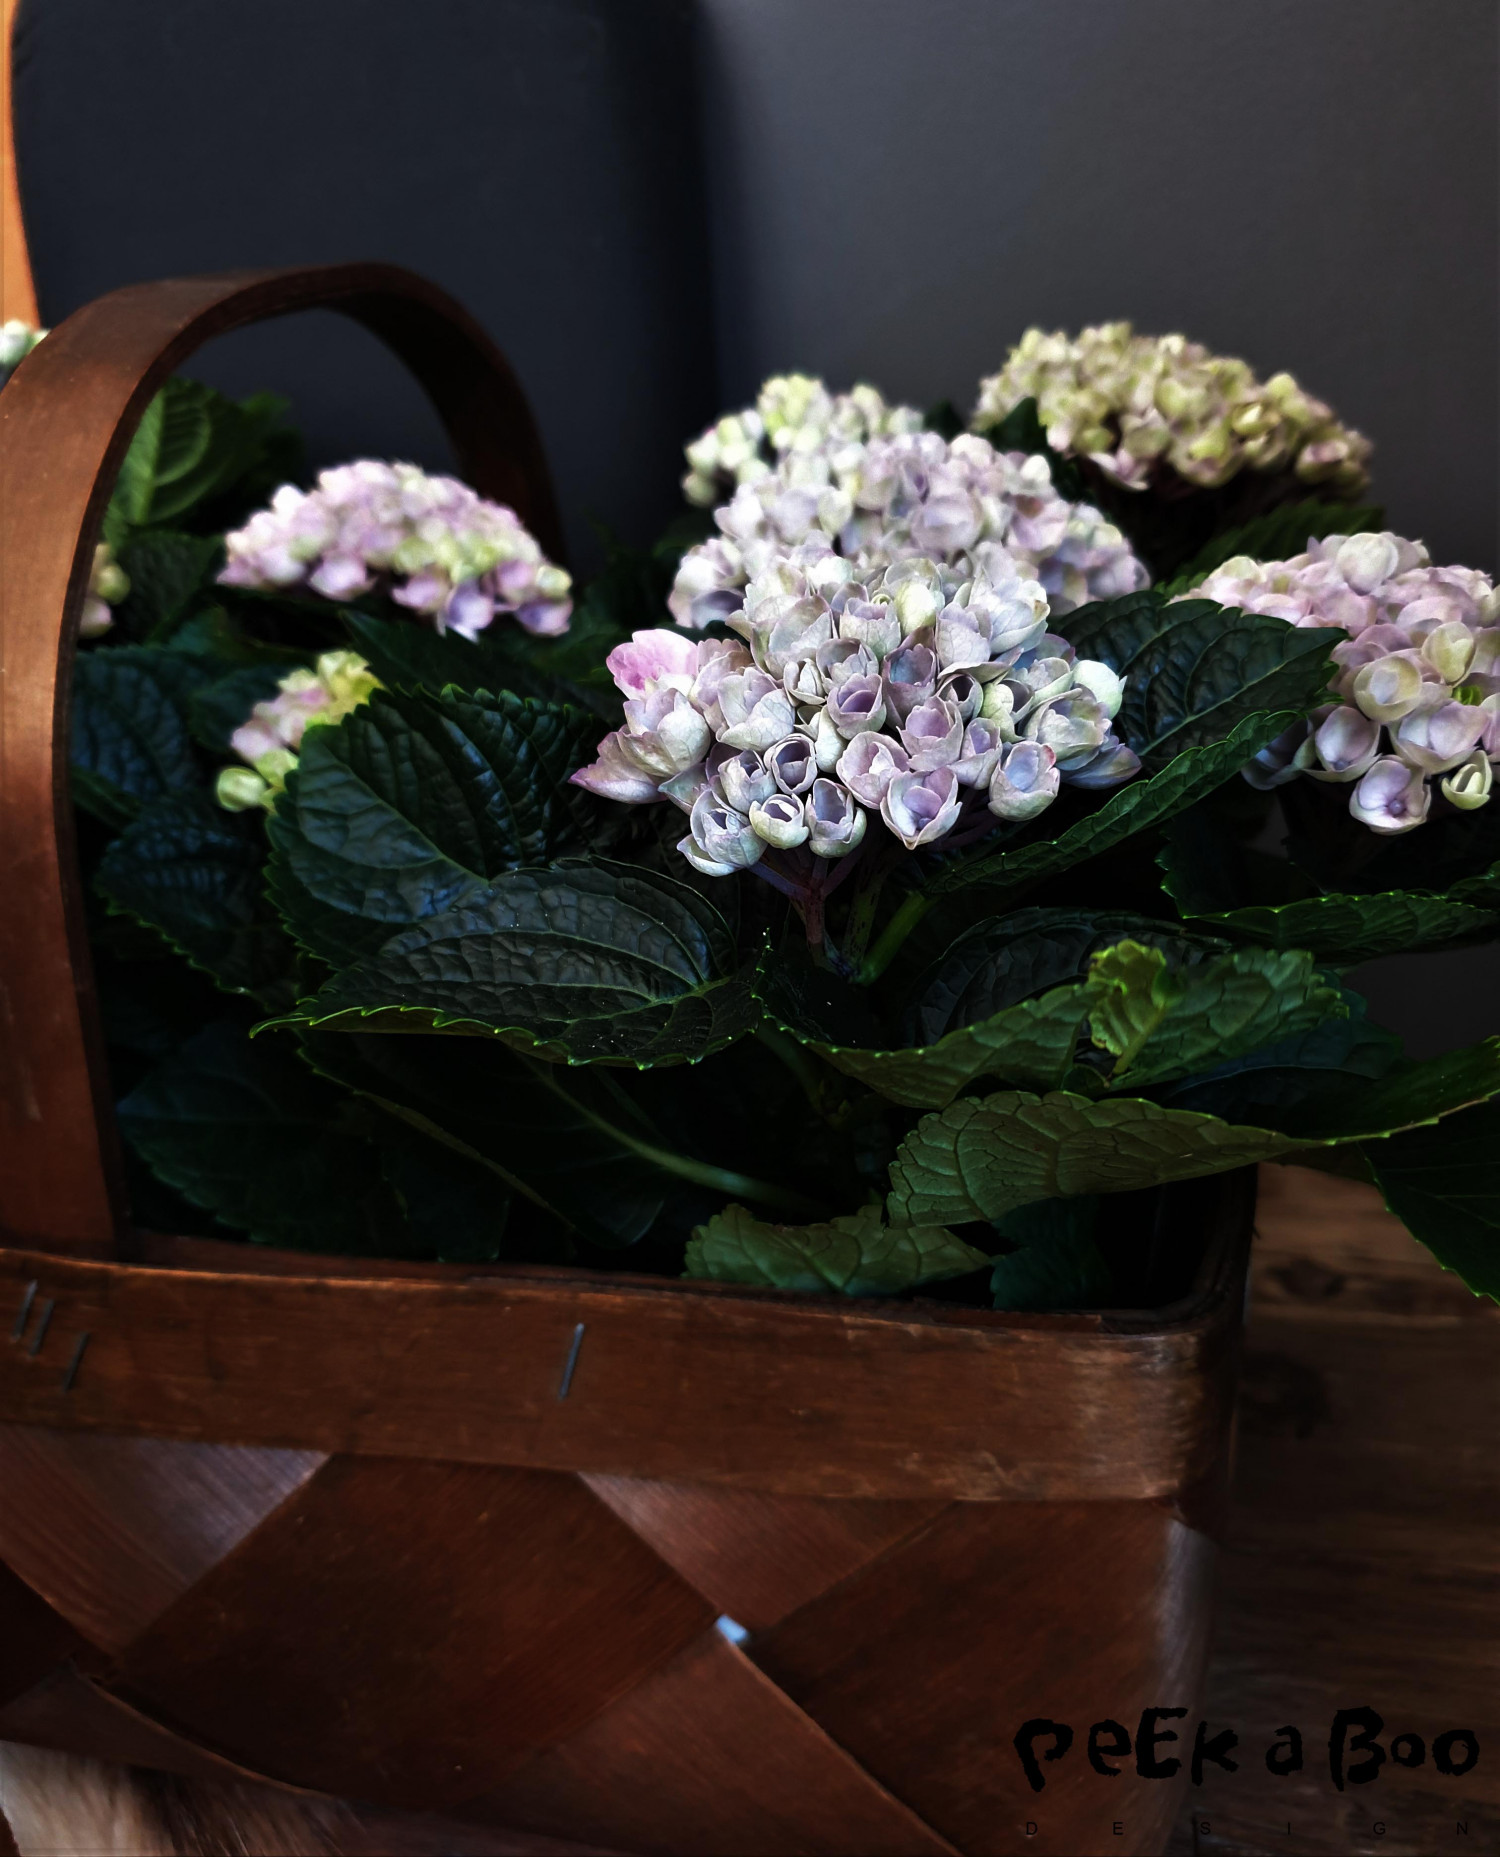 the hortensia in a basket in my livingroom.